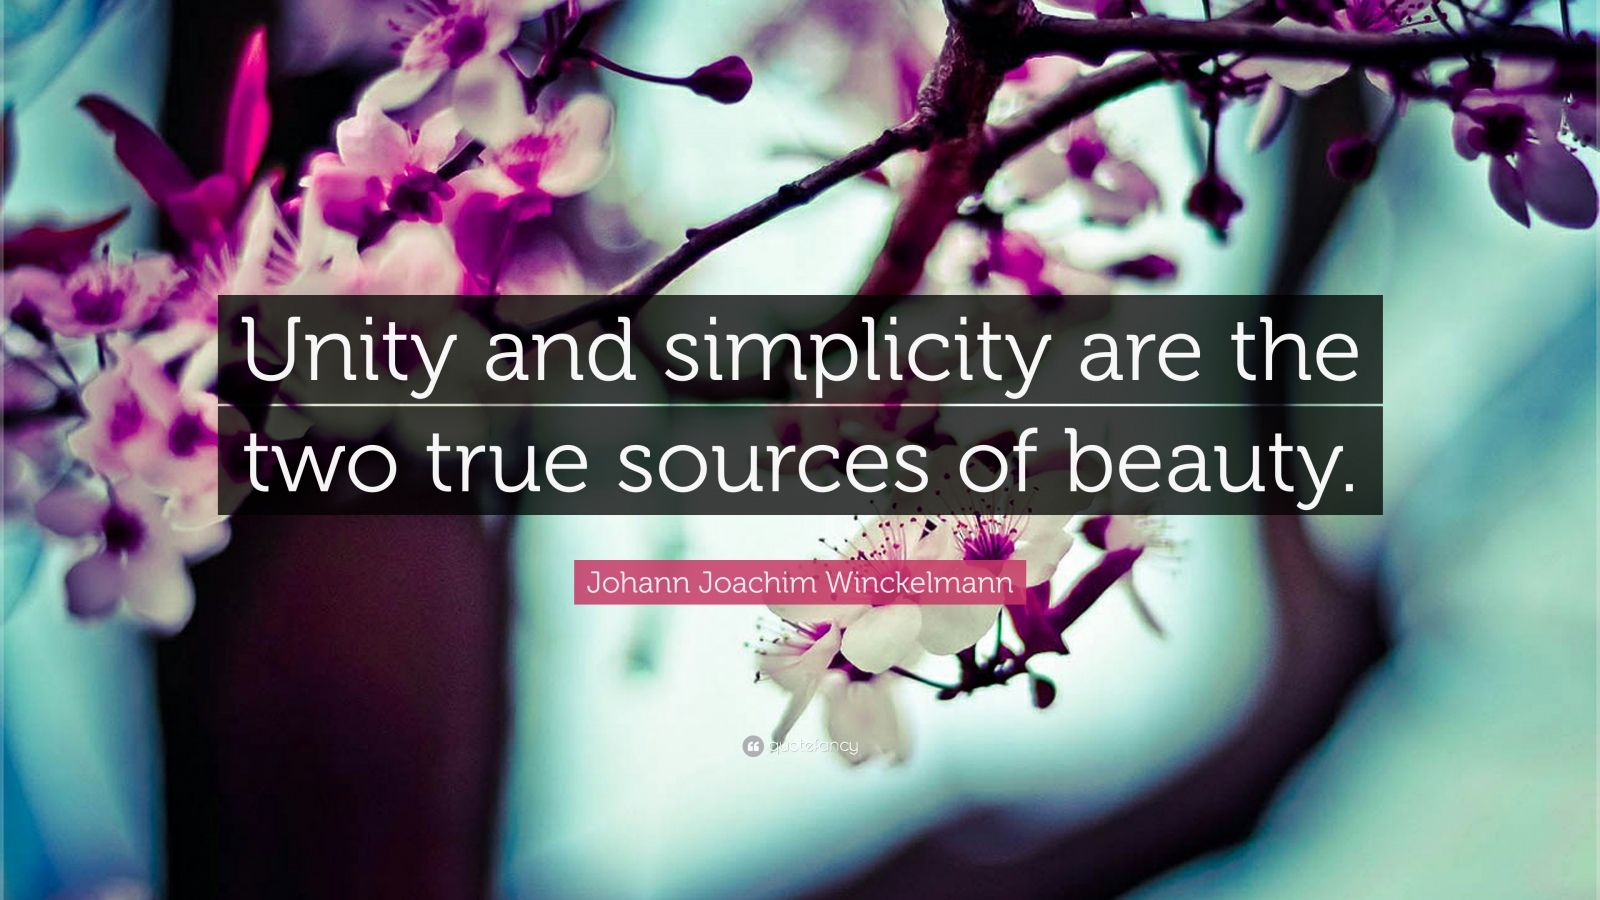 """Johann Joachim Winckelmann Quote: """"Unity and simplicity are the two true sources of beauty."""""""